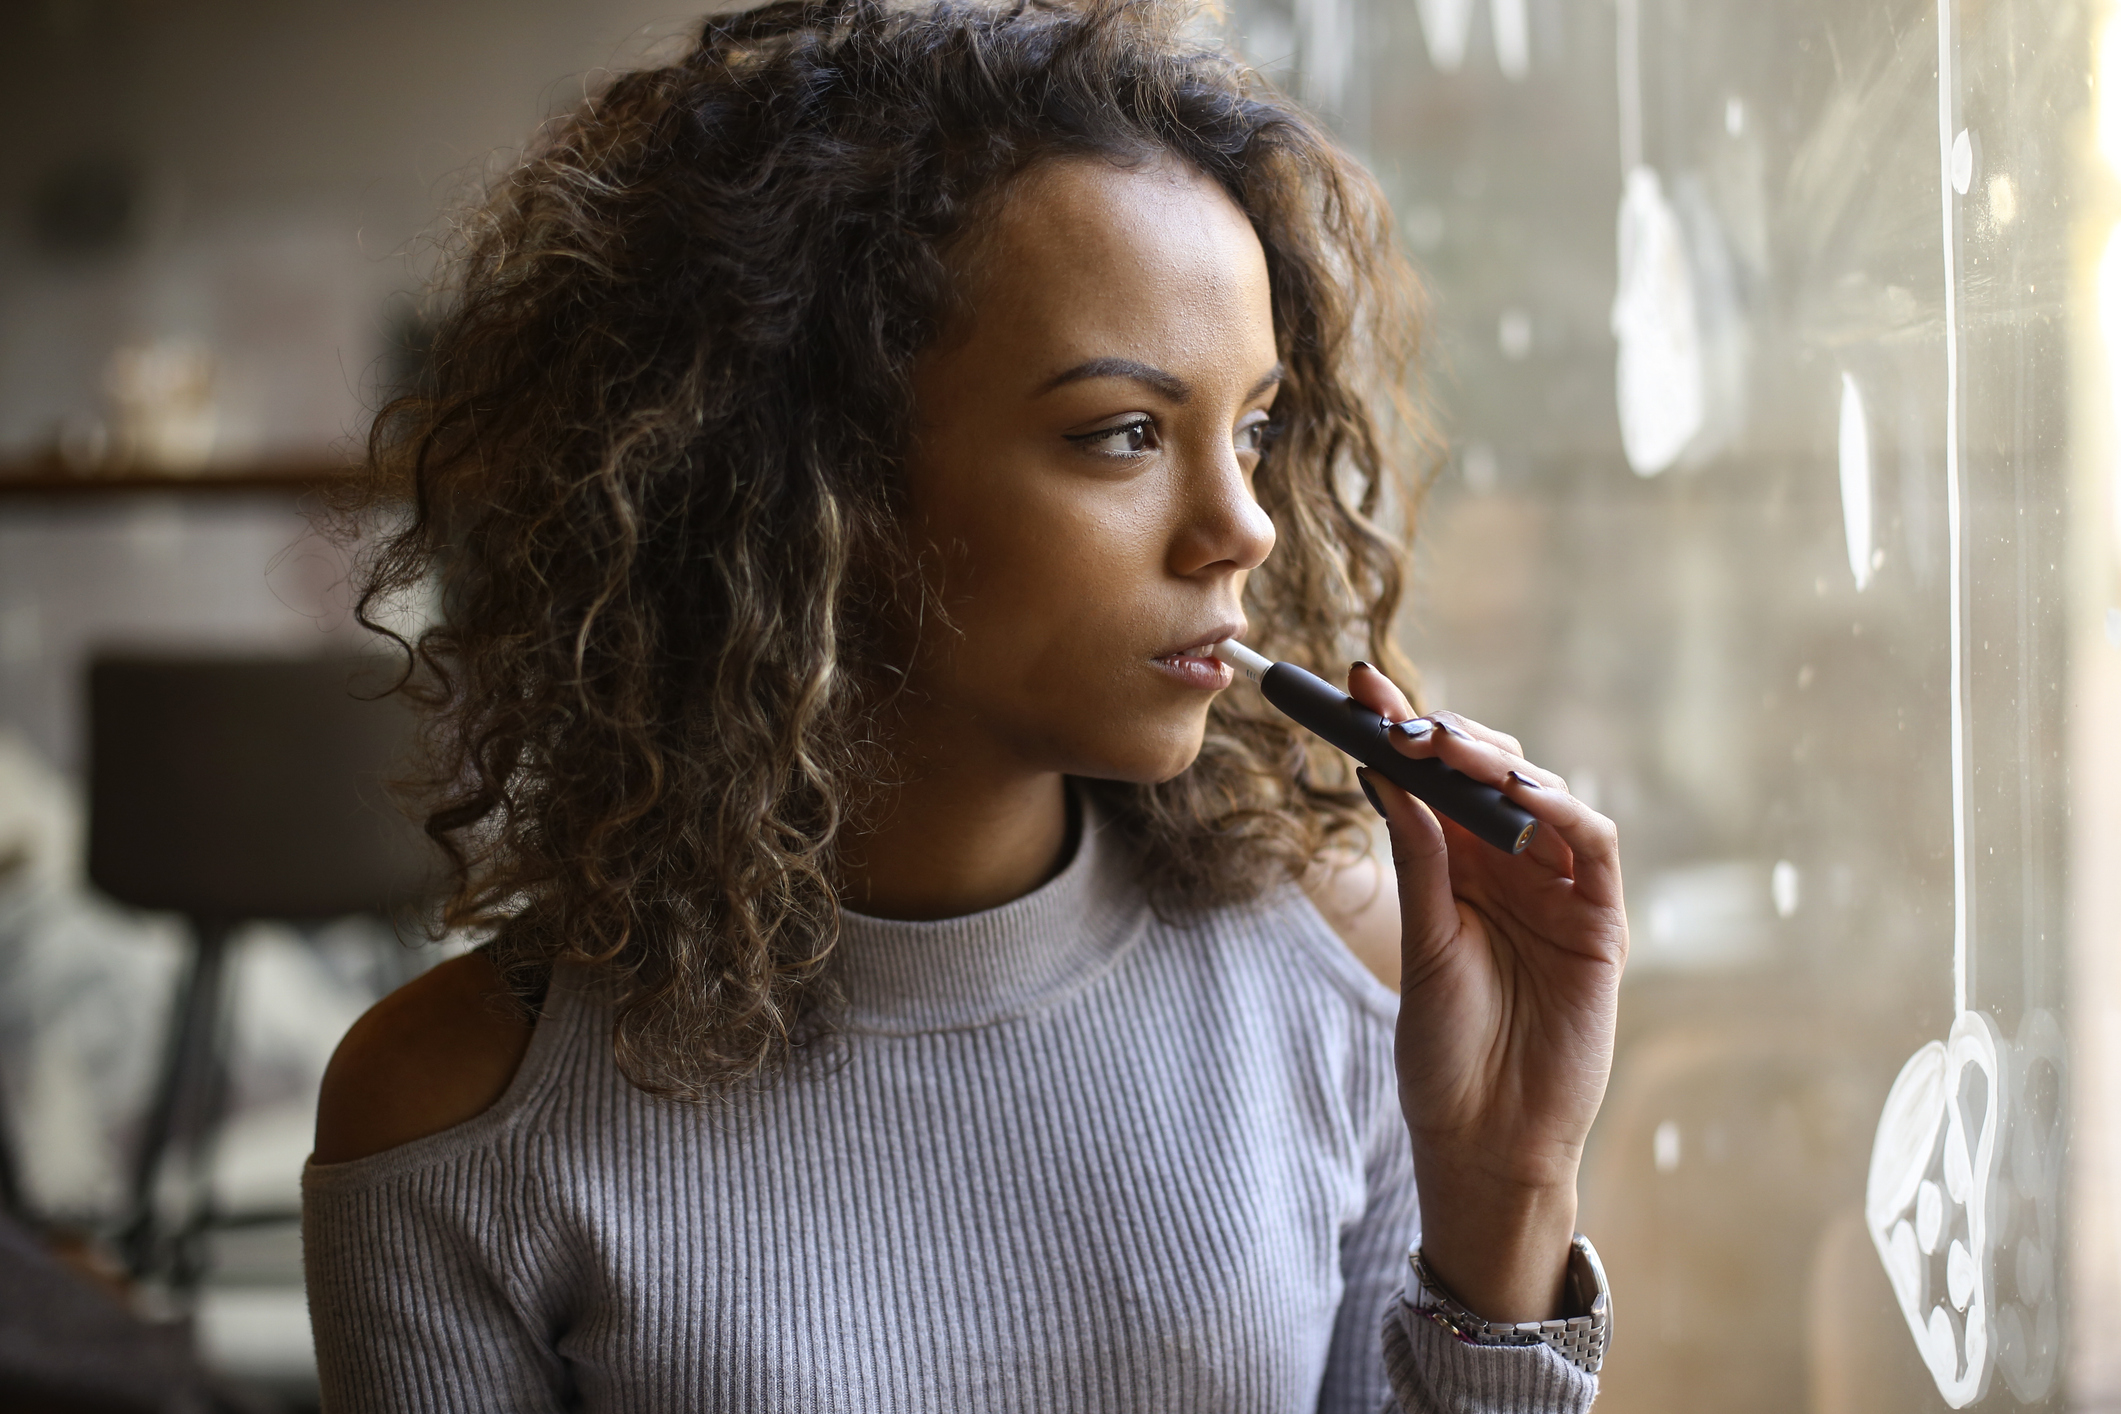 Reducing Vaping Among Youth and Young Adults 3CE